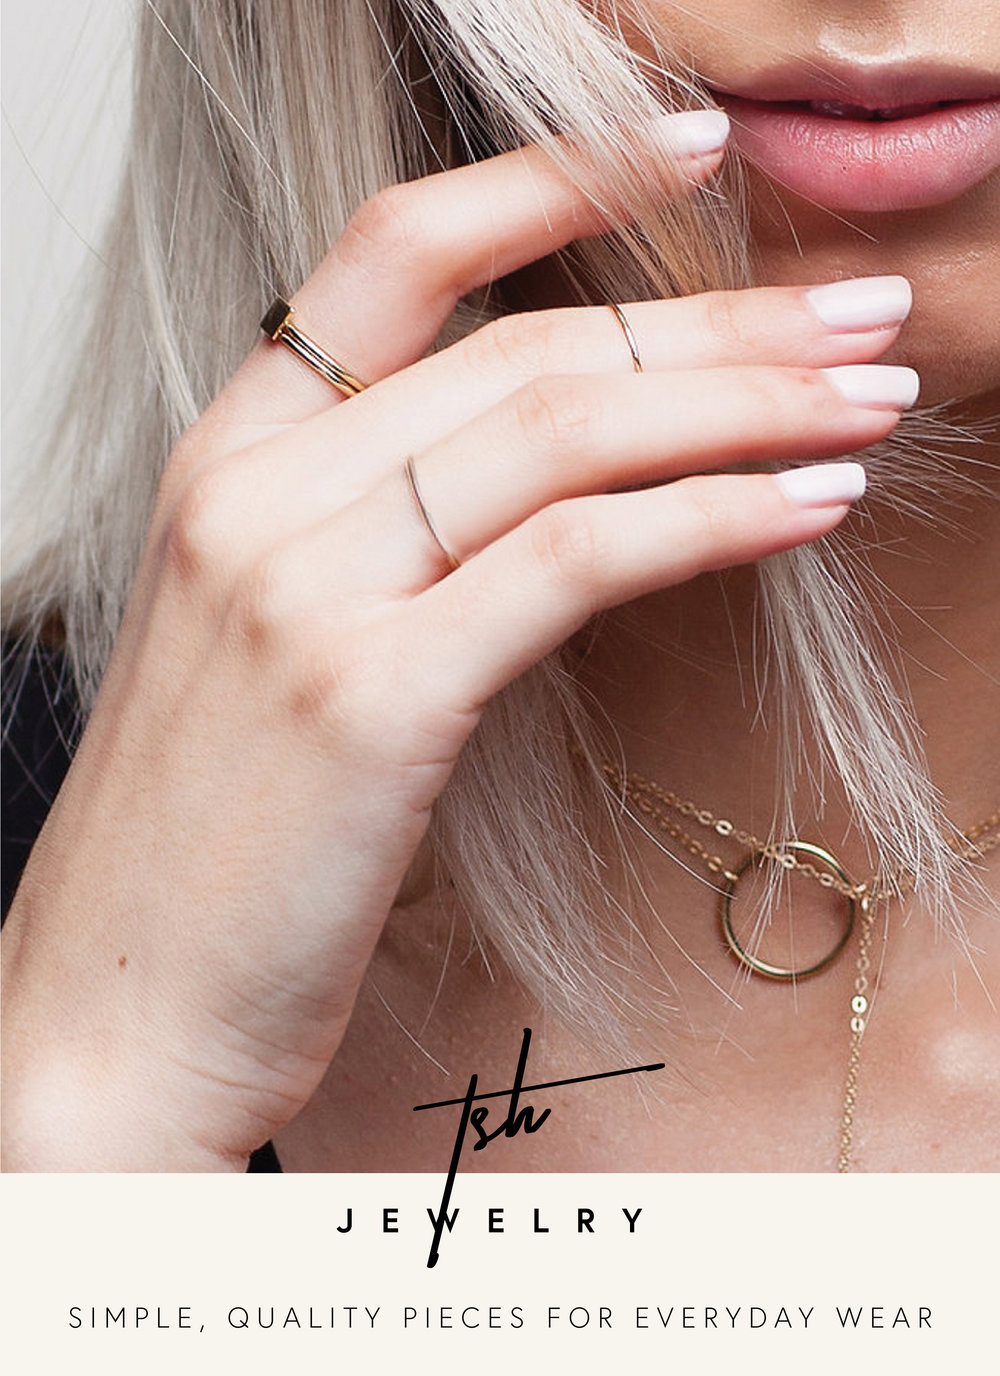 Simple Modern Jewelry for Everyday wear - TSH Jewelry by The savvy Heart-01-01-01-01-01.jpg